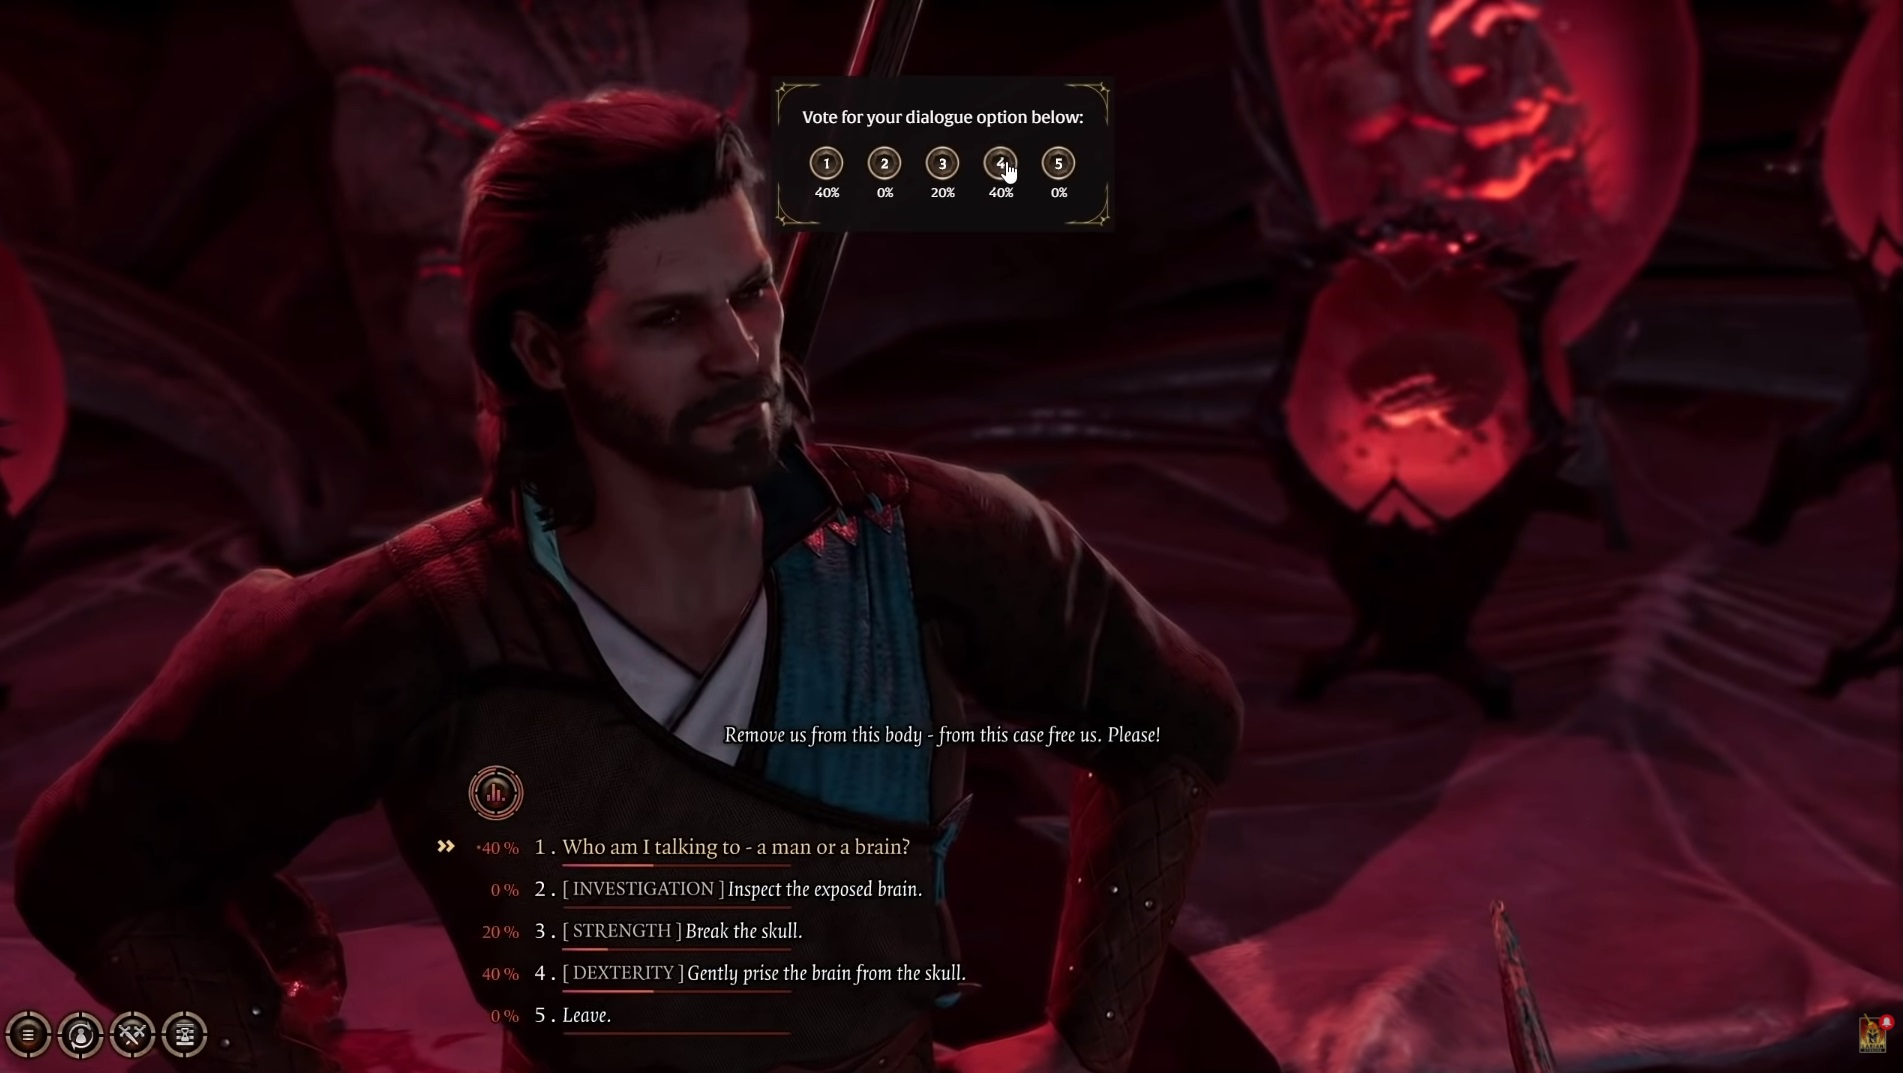 Screenshot showing players voting for dialog selections in the multiplayer version of Baldur's Gate III